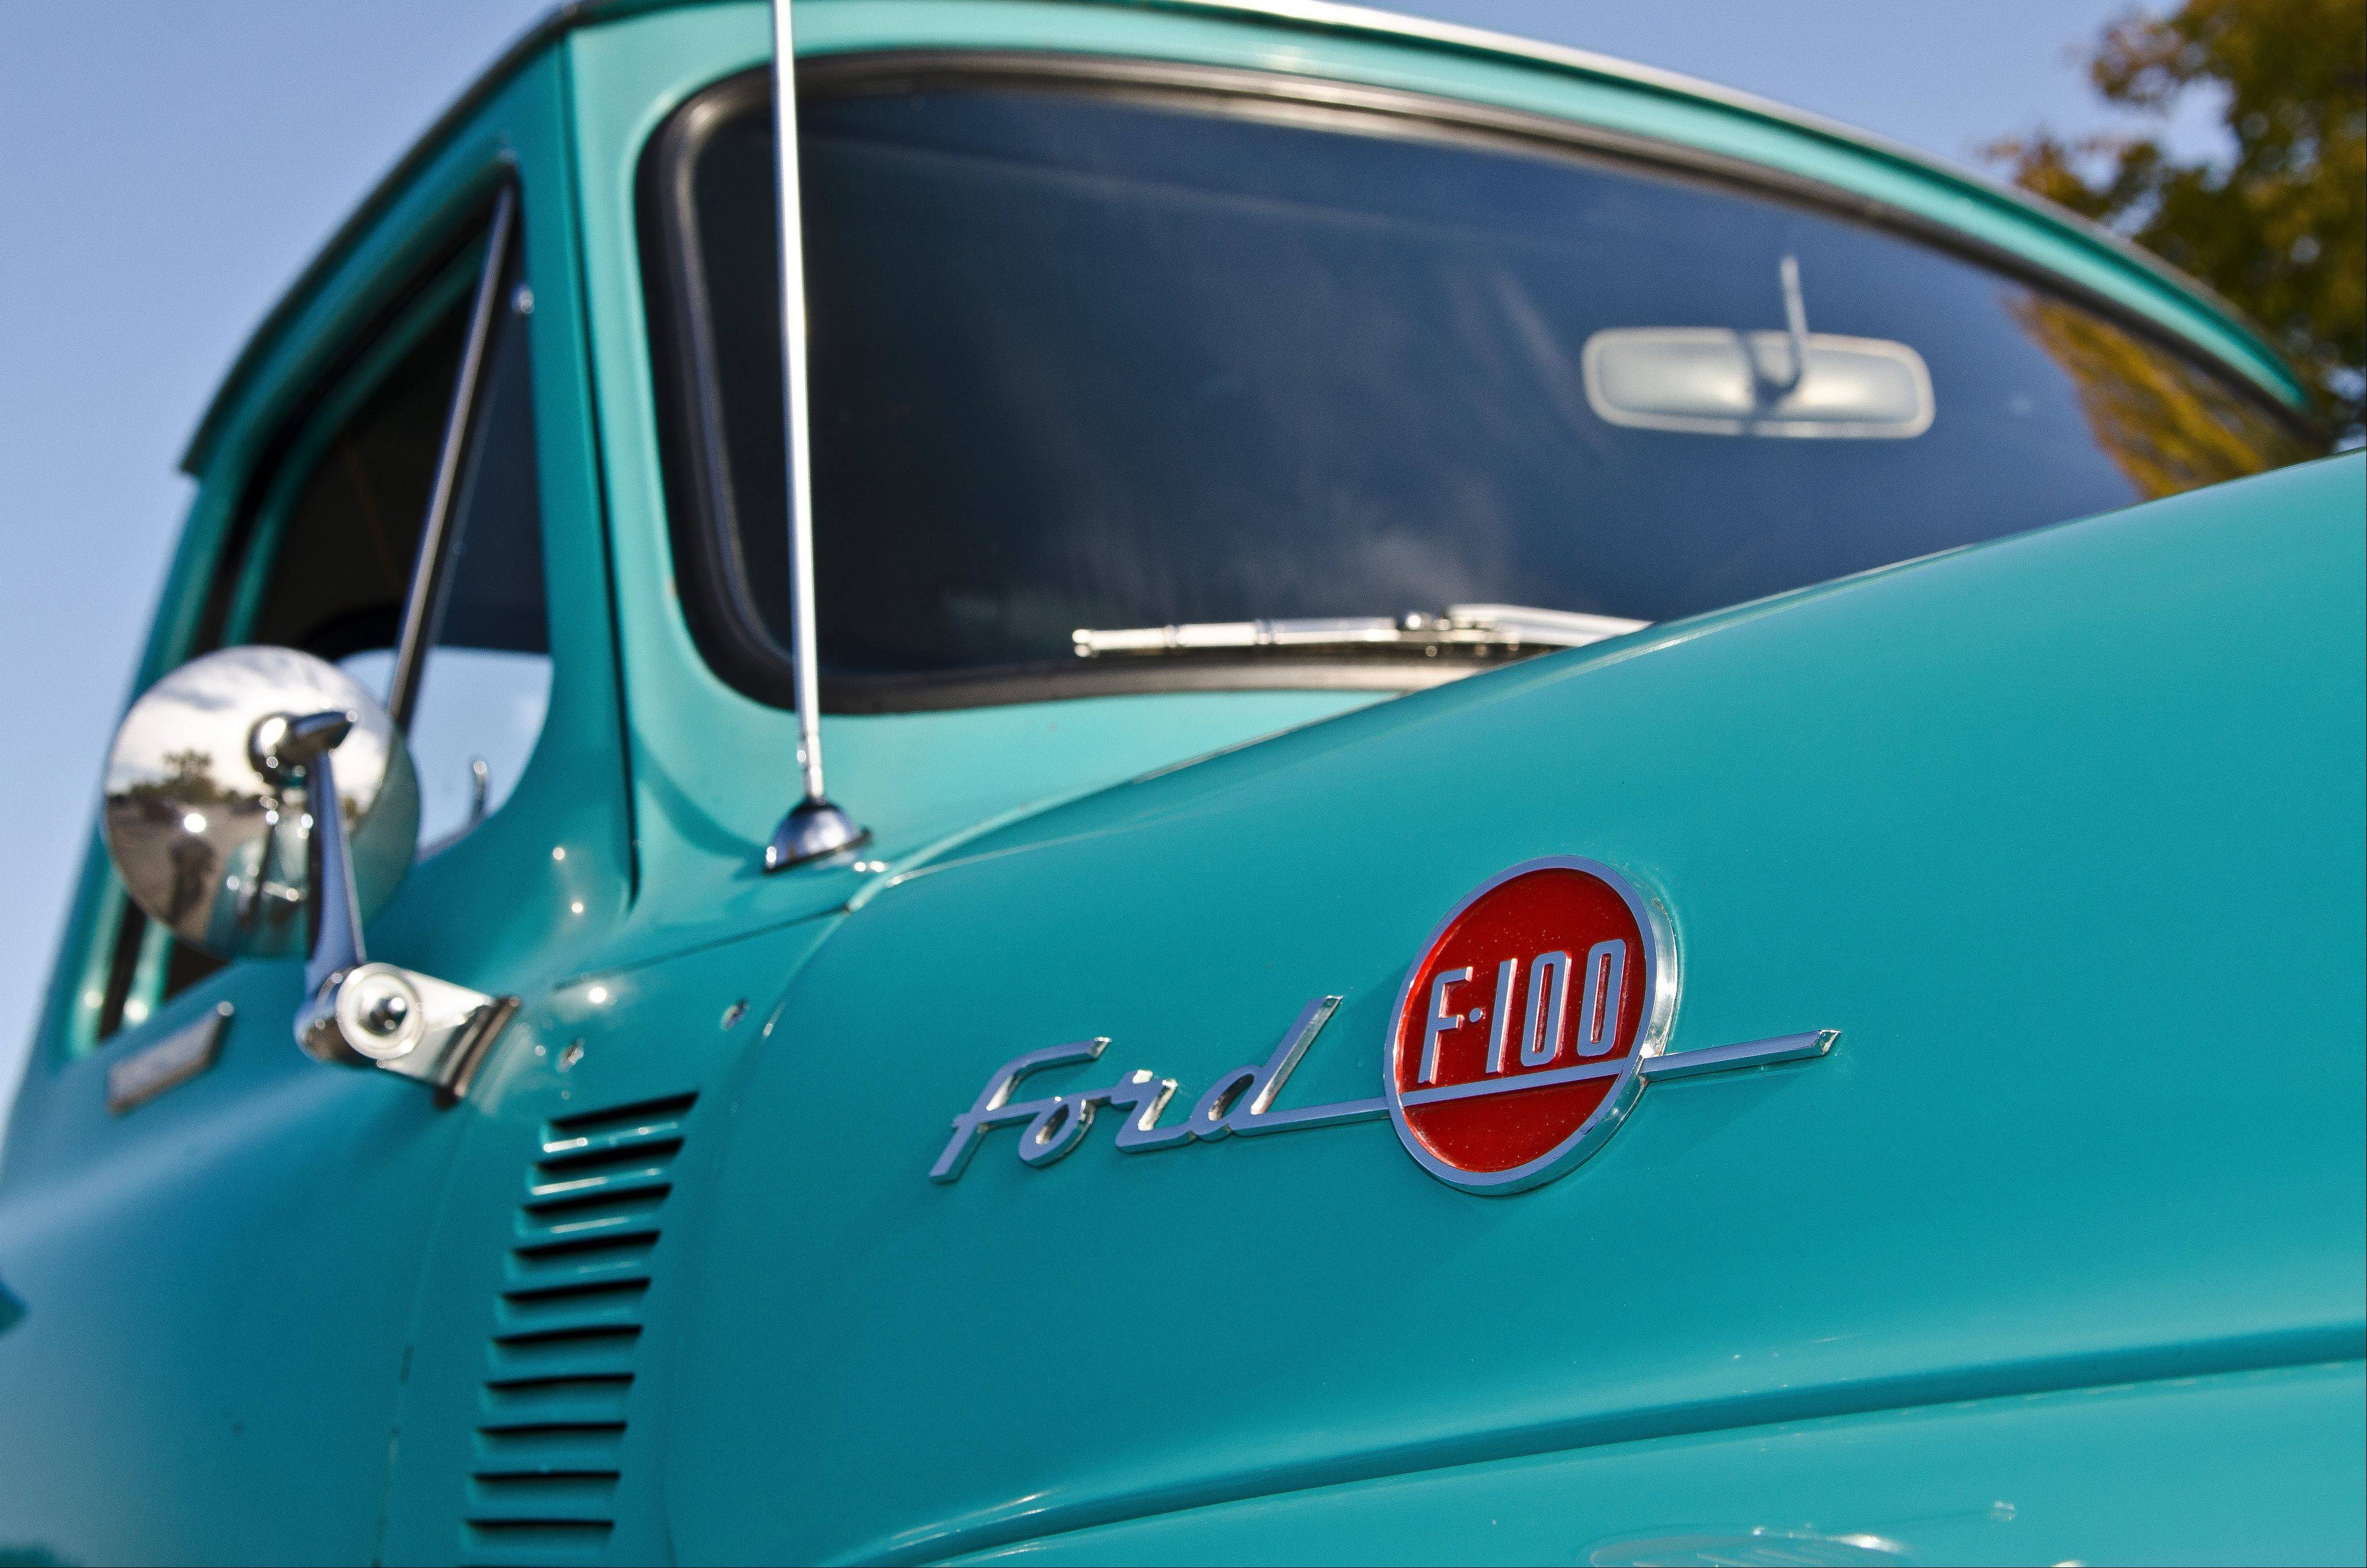 Ford made about 125,000 F100 pickup trucks in 1955.